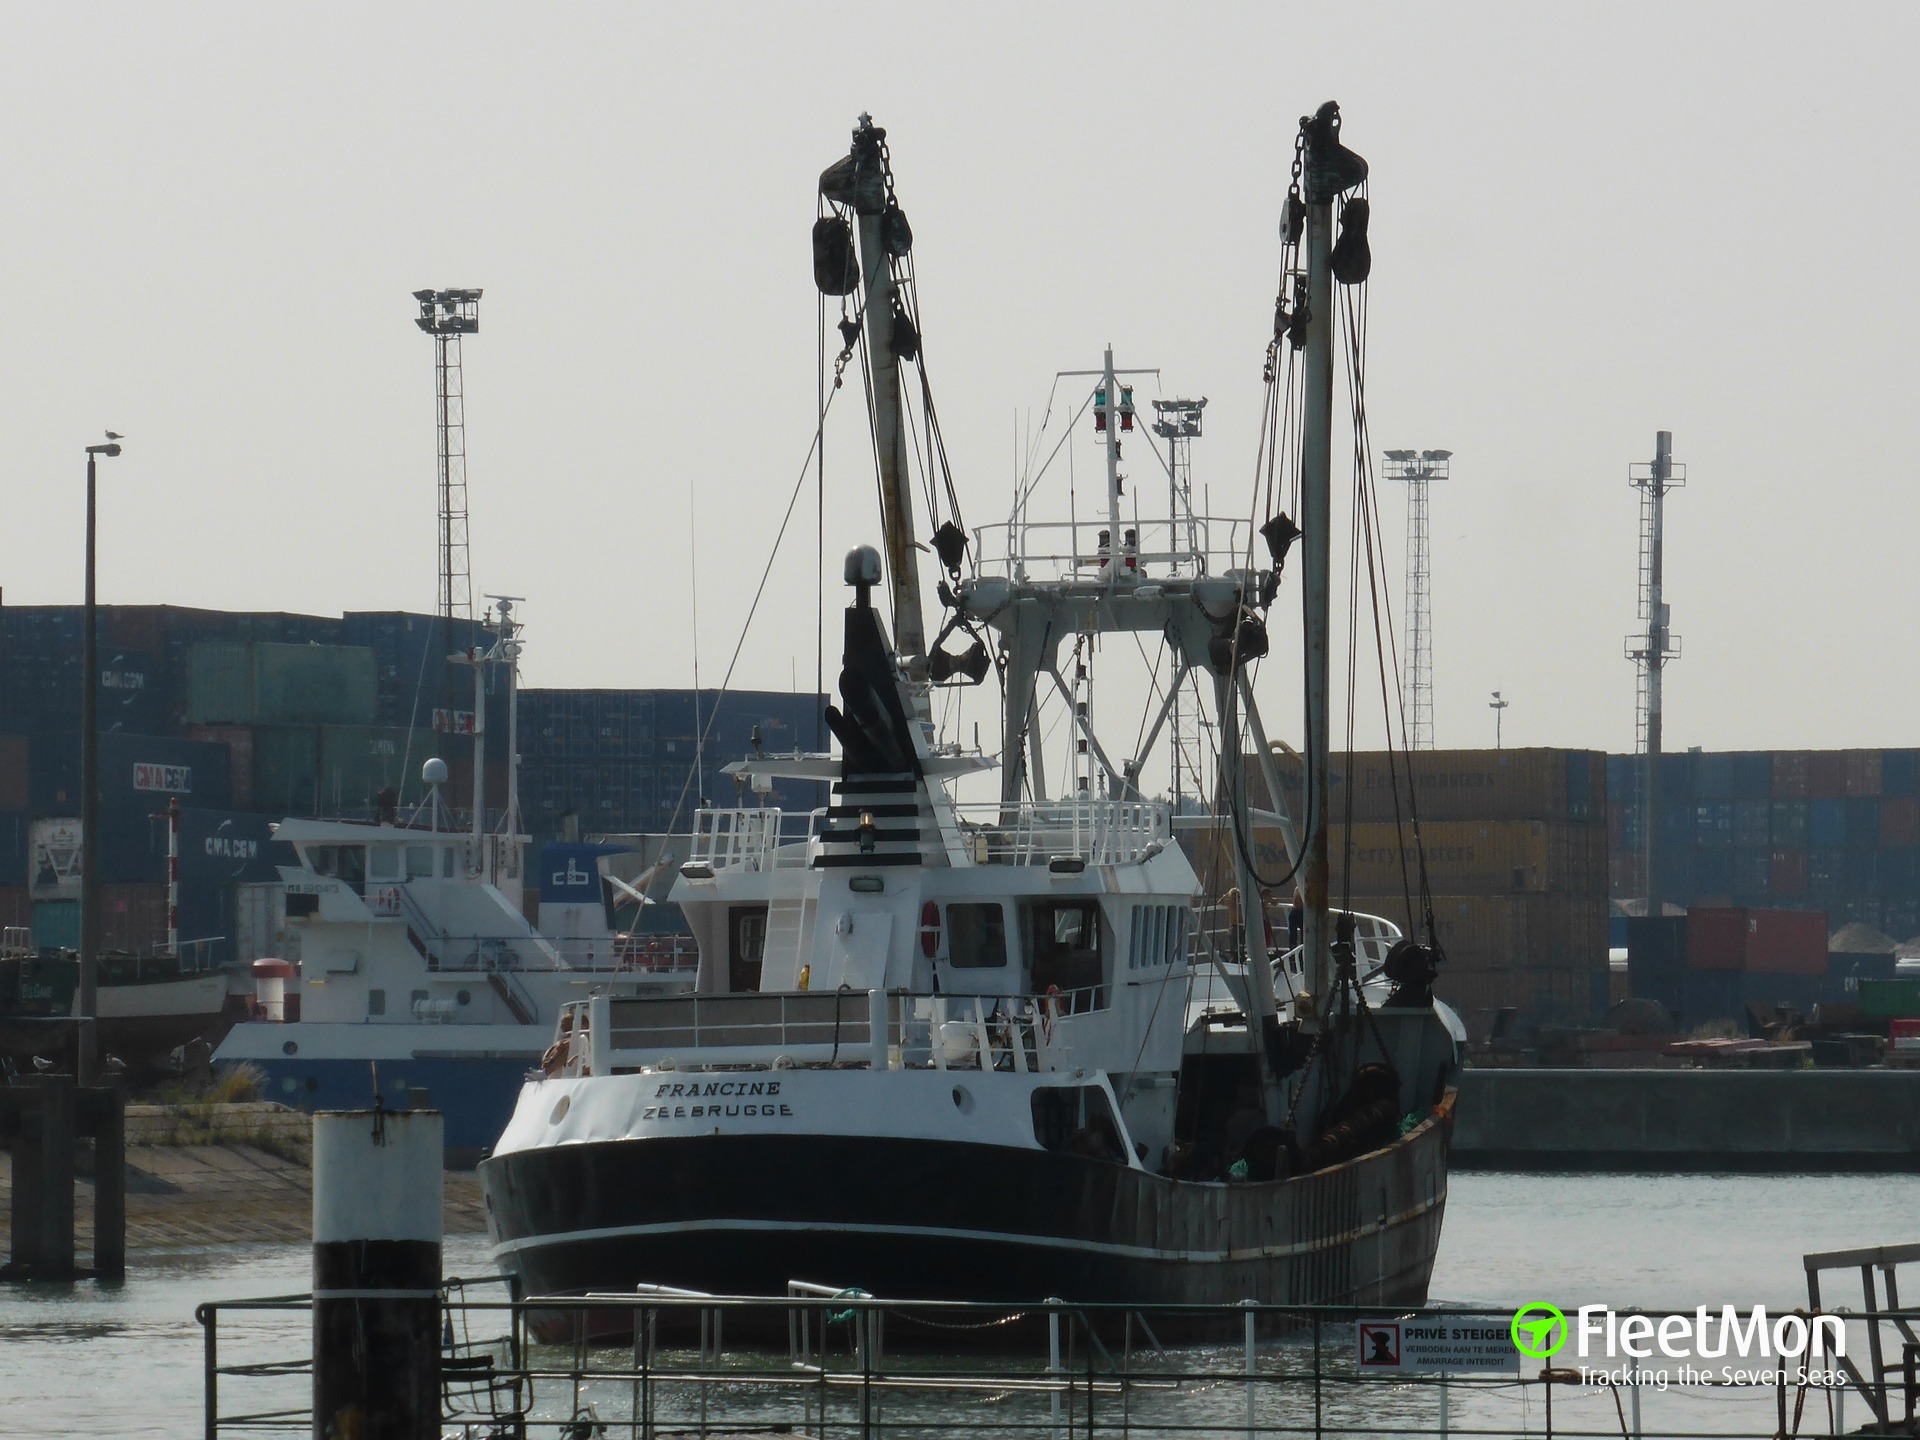 Trawler MVF Z90 FRANCINE fire, three hospitalized, English Canal